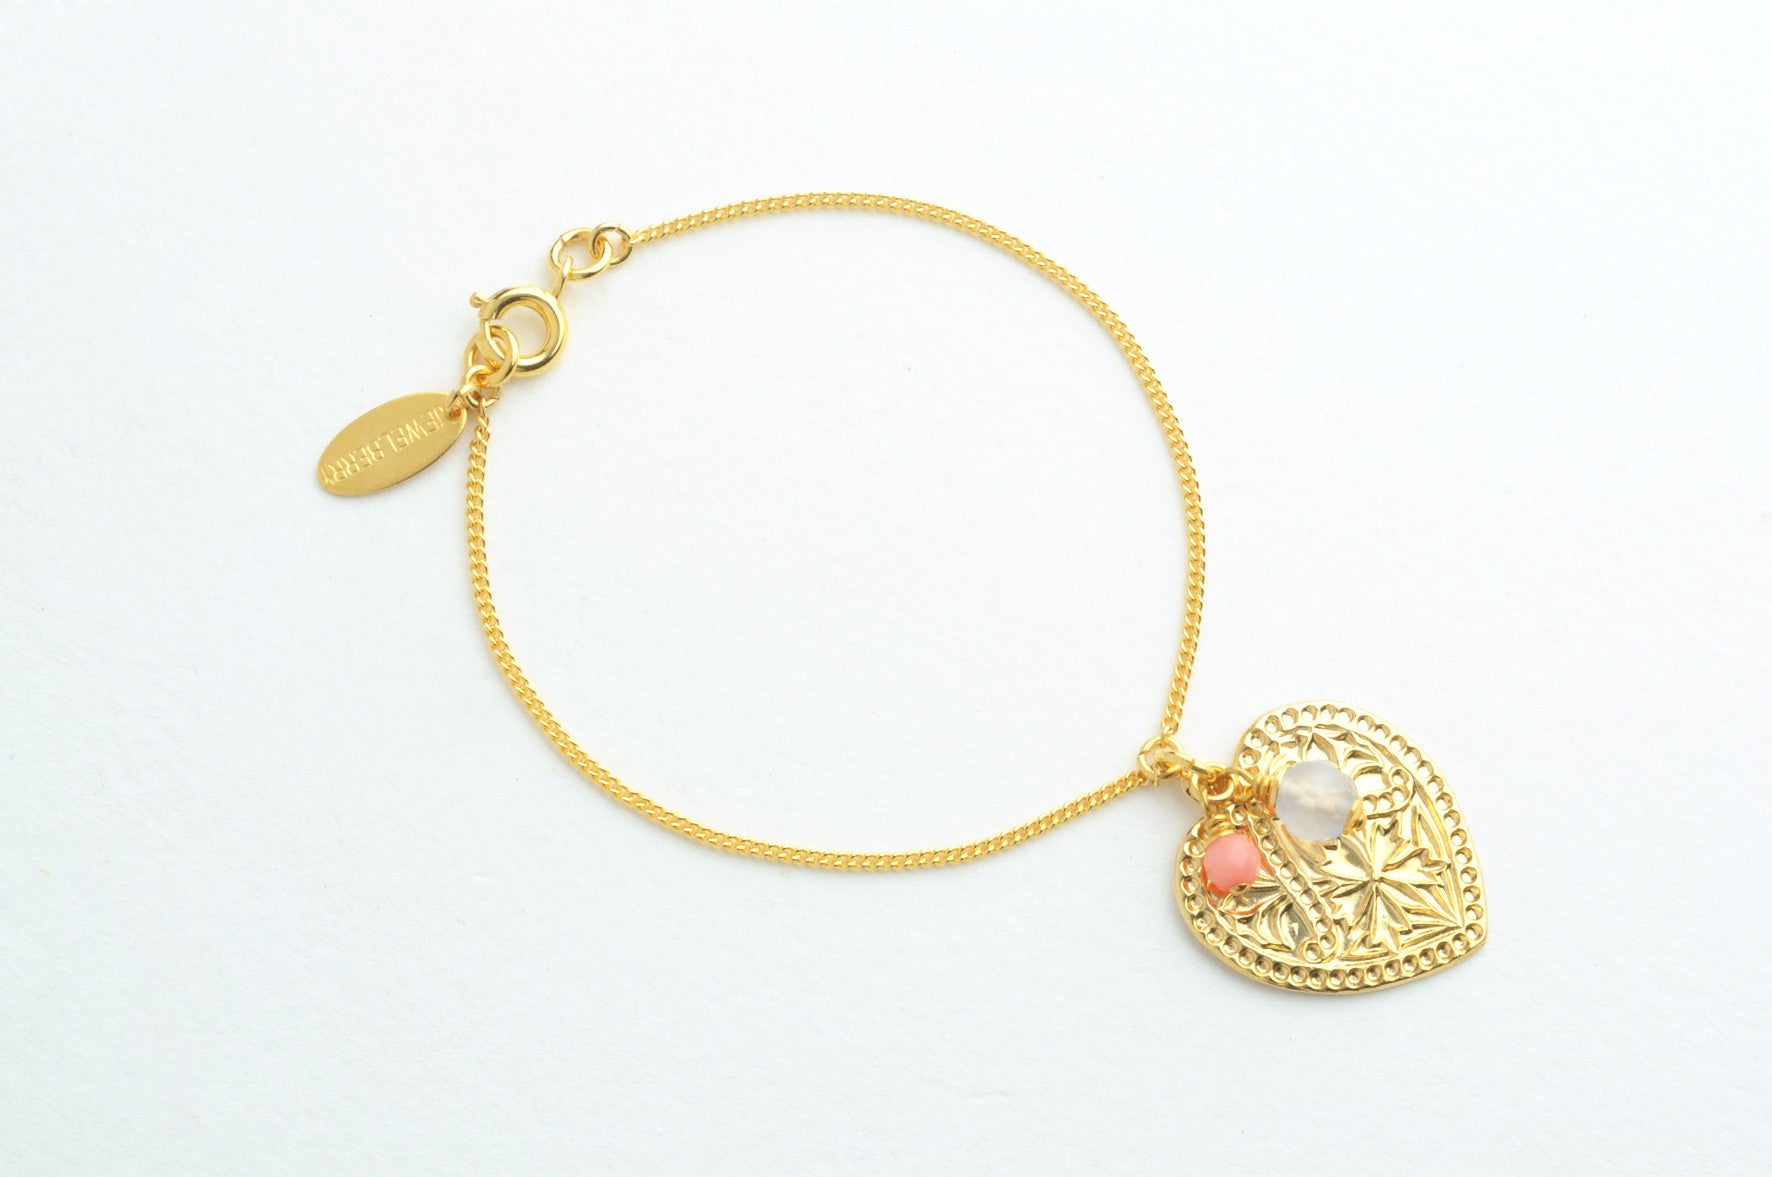 ....Armband ORNAMENTAL HEART vergoldet..Bracelet ORNAMENTAL HEART gold plated....